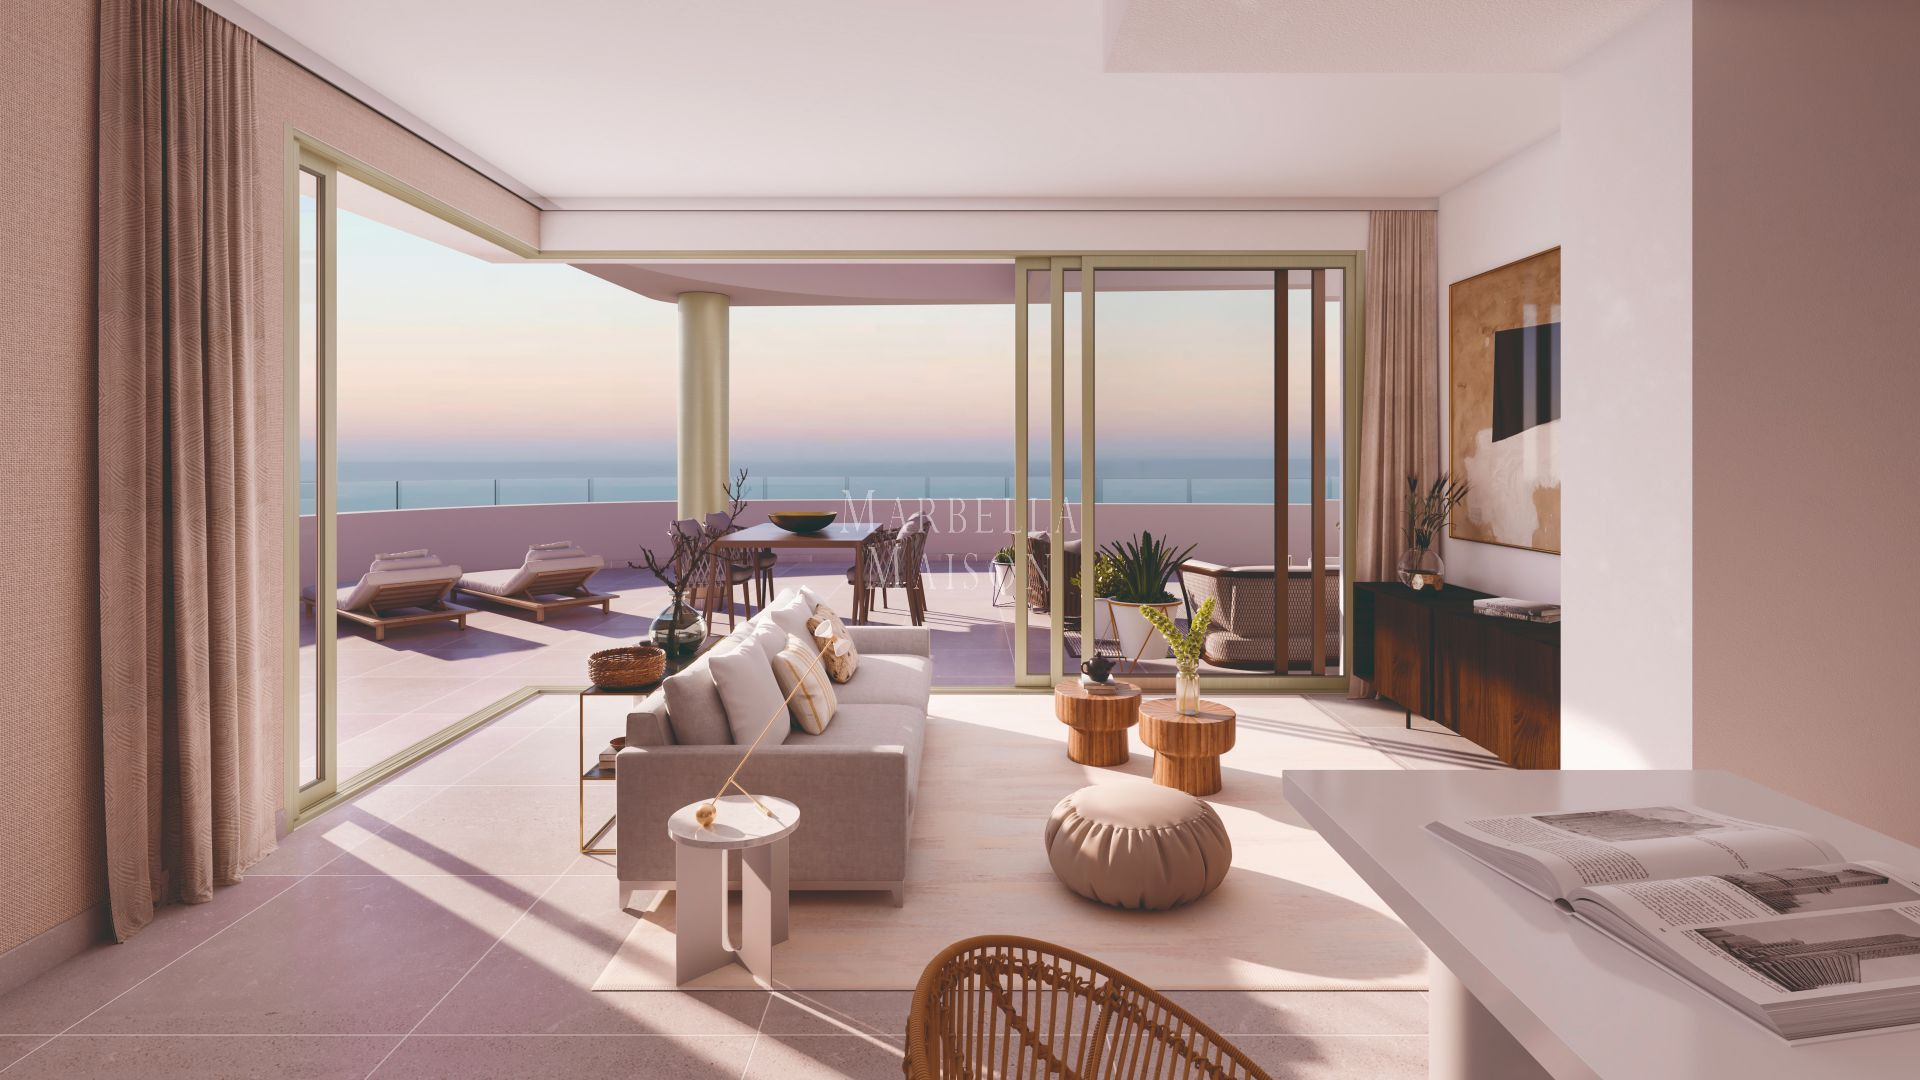 Magnificent apartments and penthouses with stunning views and direct access to the beach in Fuengirola